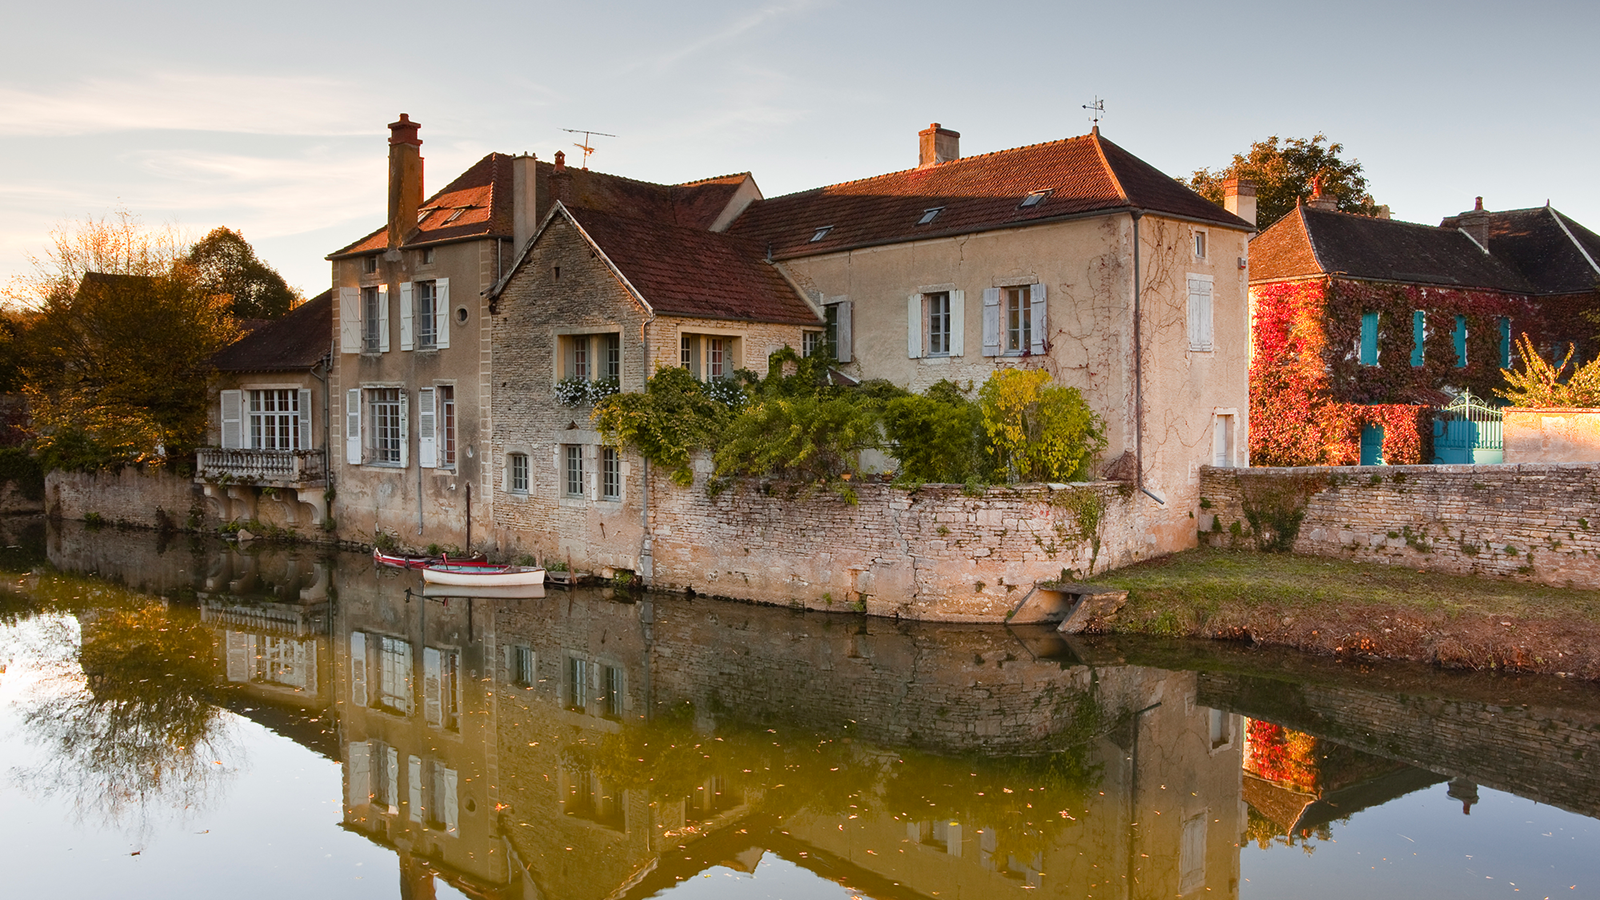 Noyers, village médiéval sur les bords du Serein